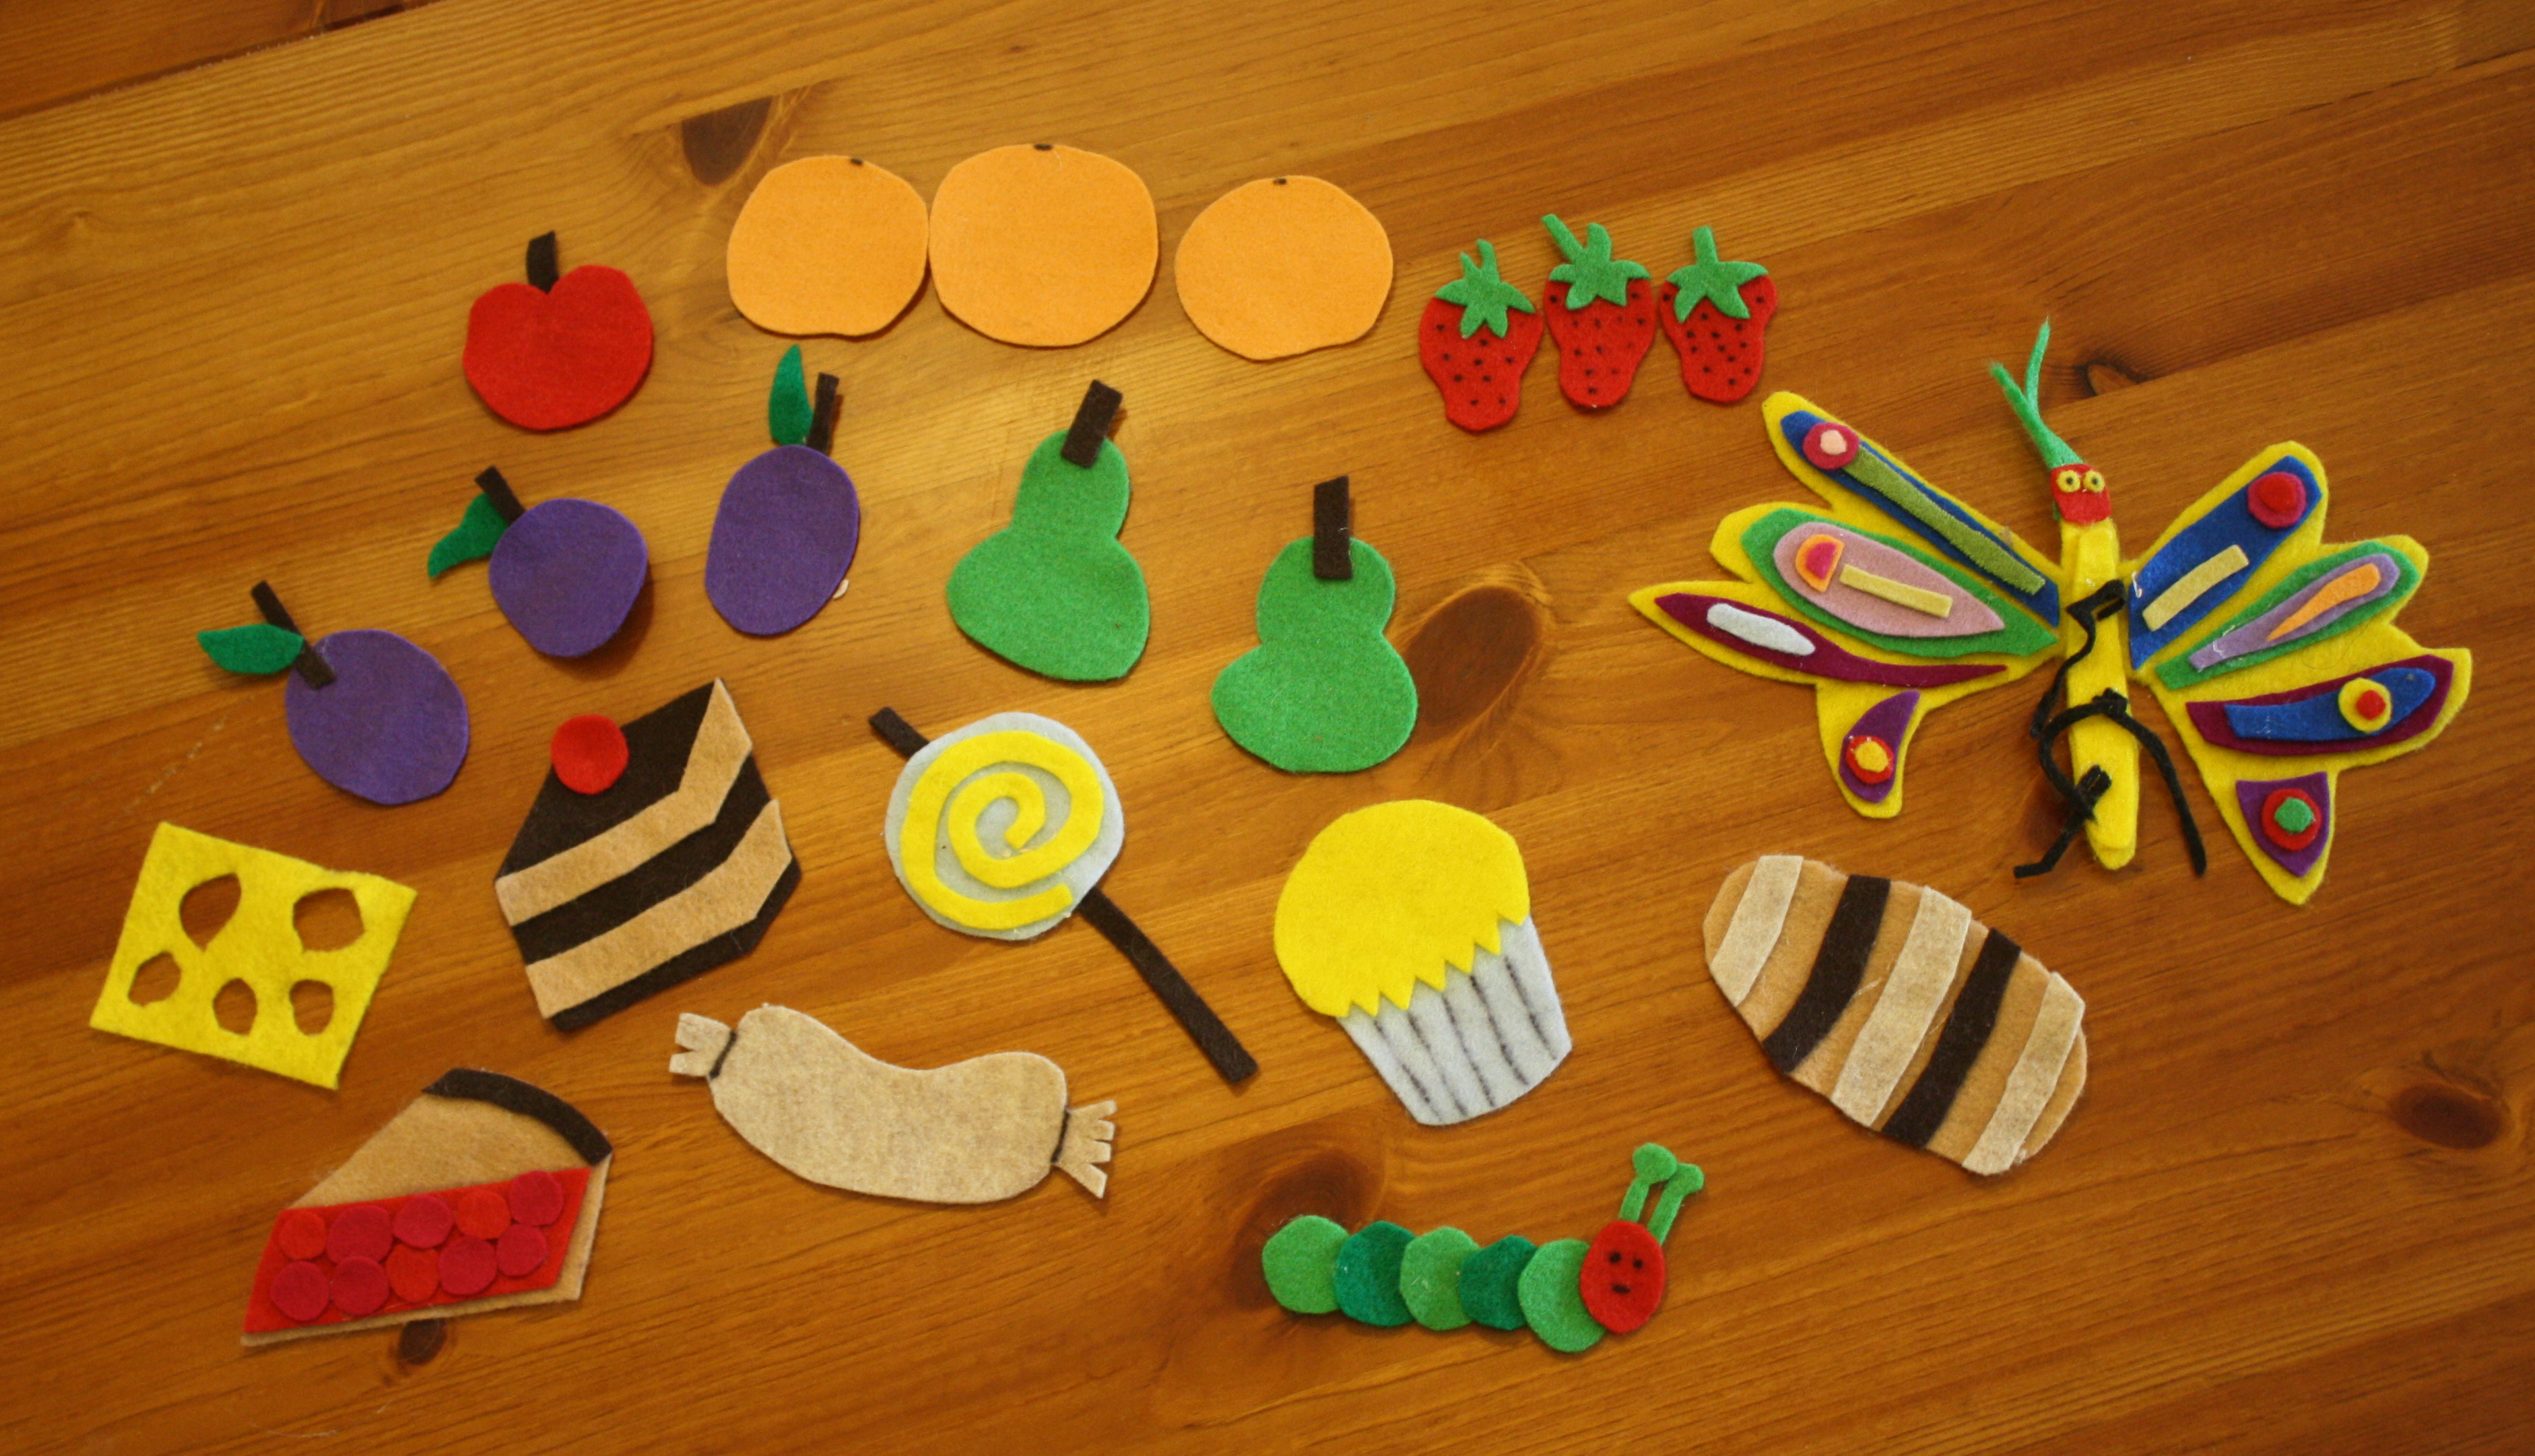 photograph relating to Printable Felt Board Stories known as Handmade Felt Discussion boards and Reviews - Buggy and Pal